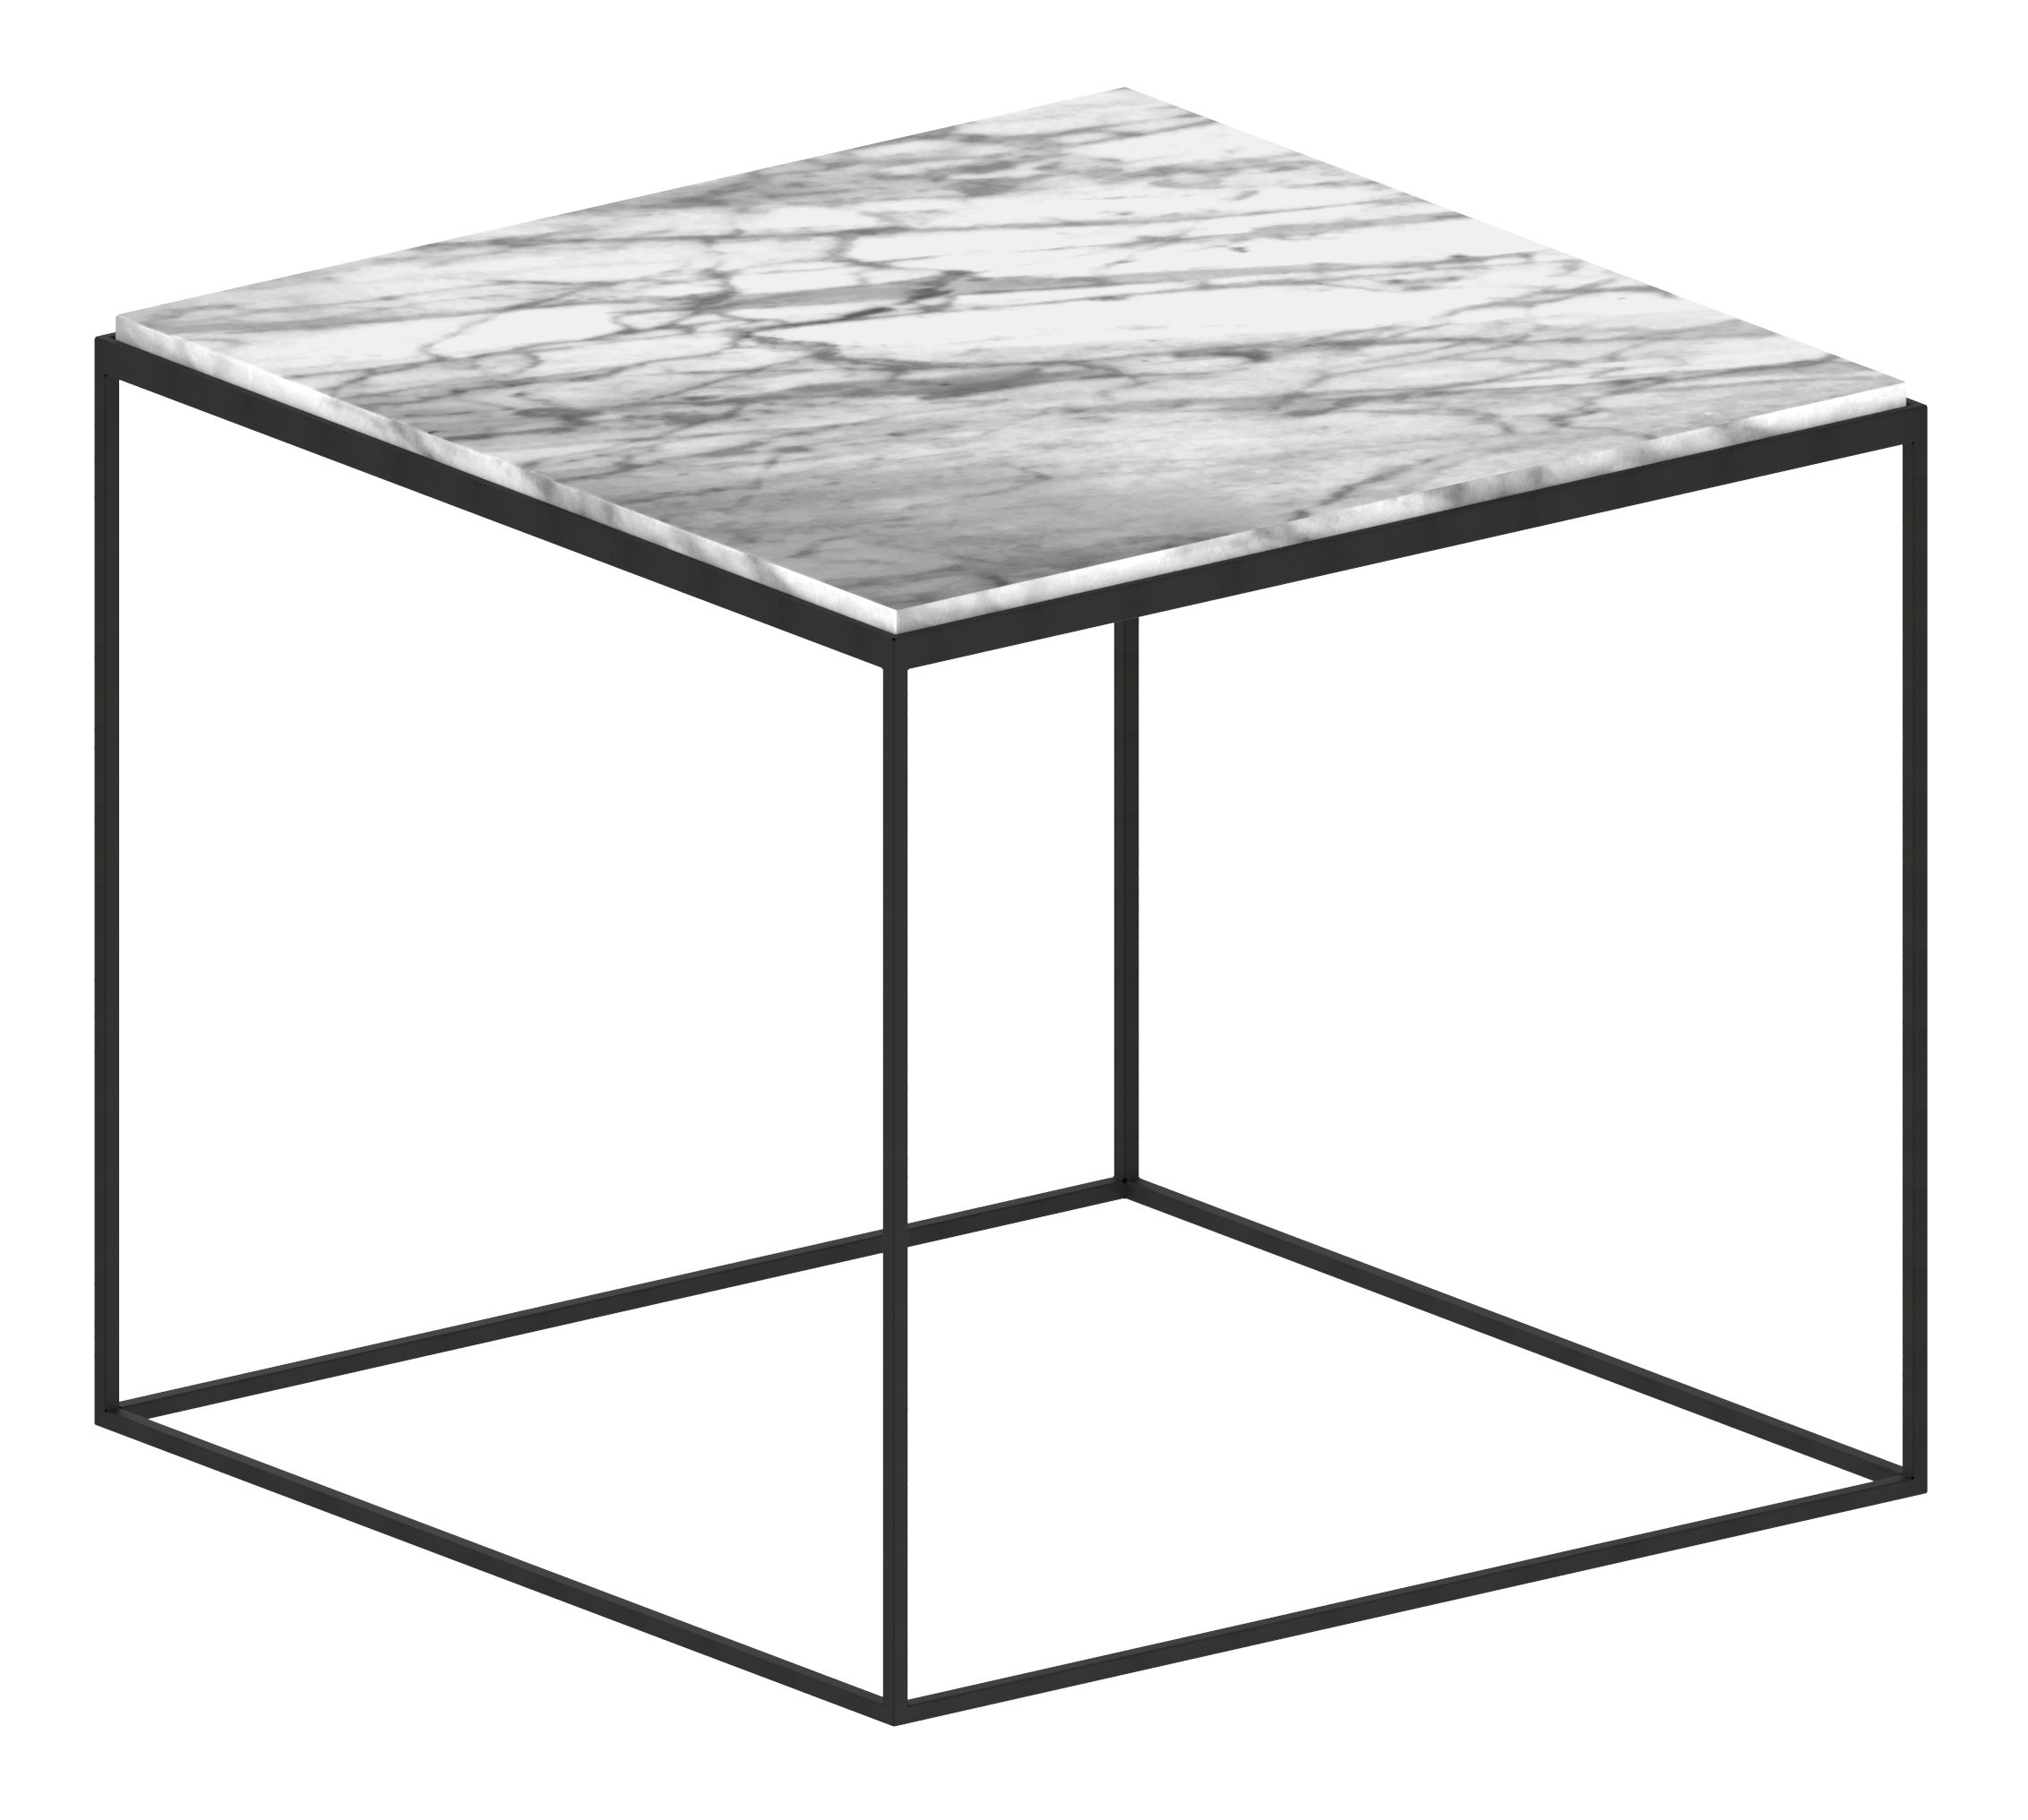 Furniture - Coffee Tables - Slim Marbre Coffee table - 54 x 54 x H 48 cm by Zeus - White marble - Carrare marble, Epoxy painted steel